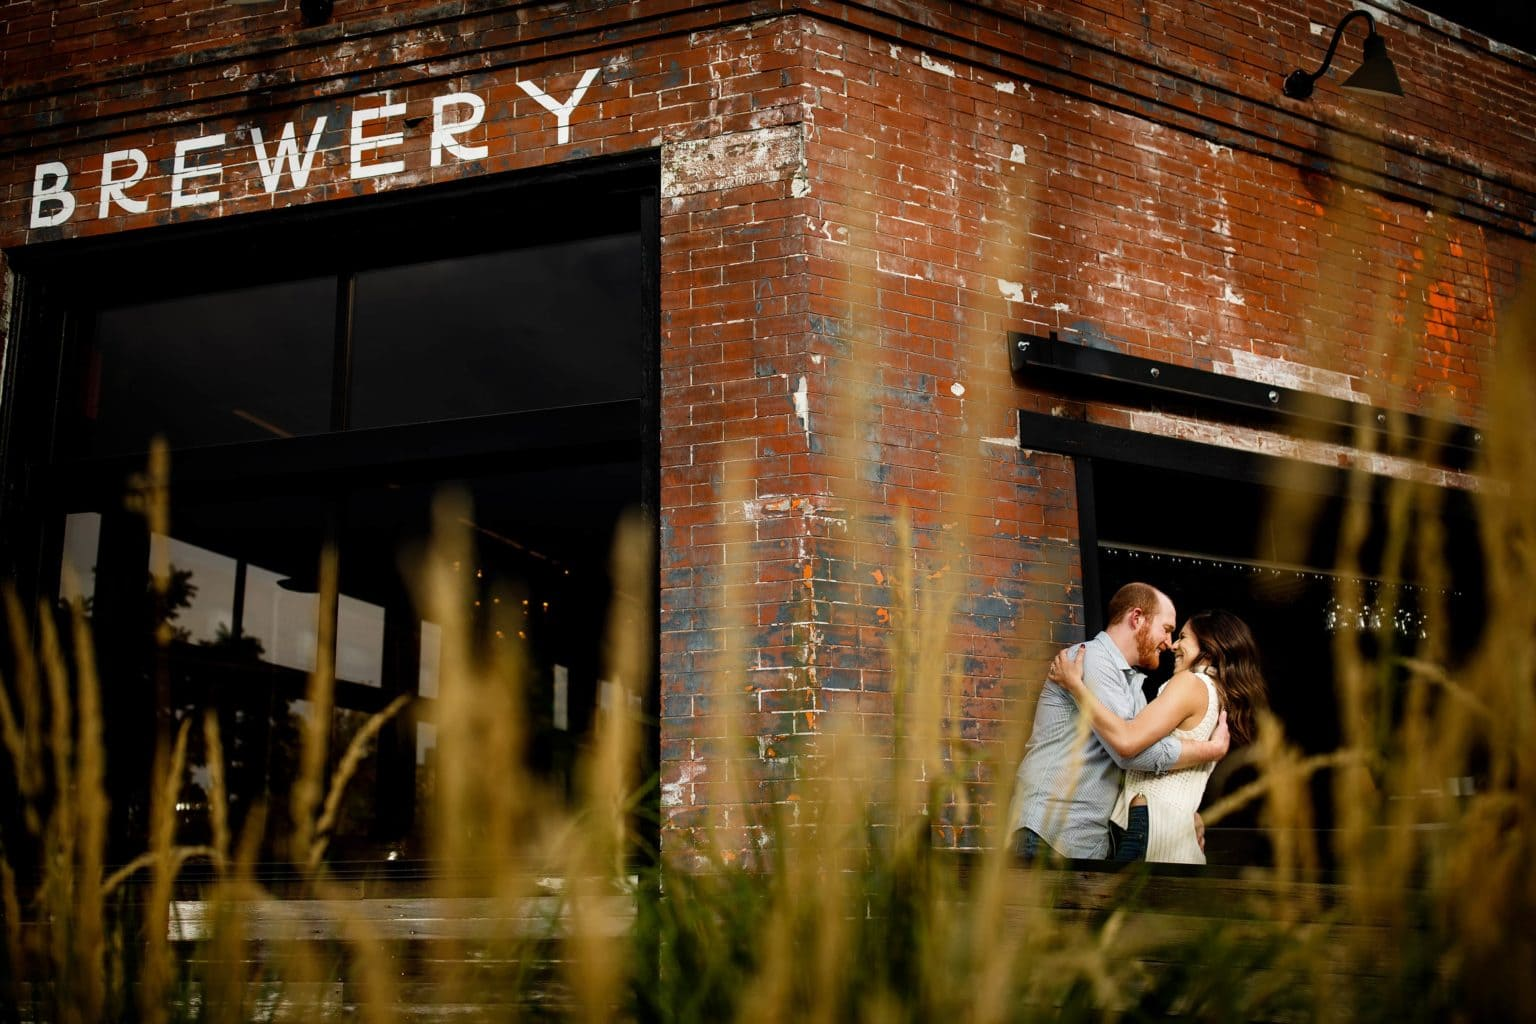 Chris and Angie embrace outside of Briar Common Brewery in the Jefferson Park neighborhood of Denver during their engagement photos